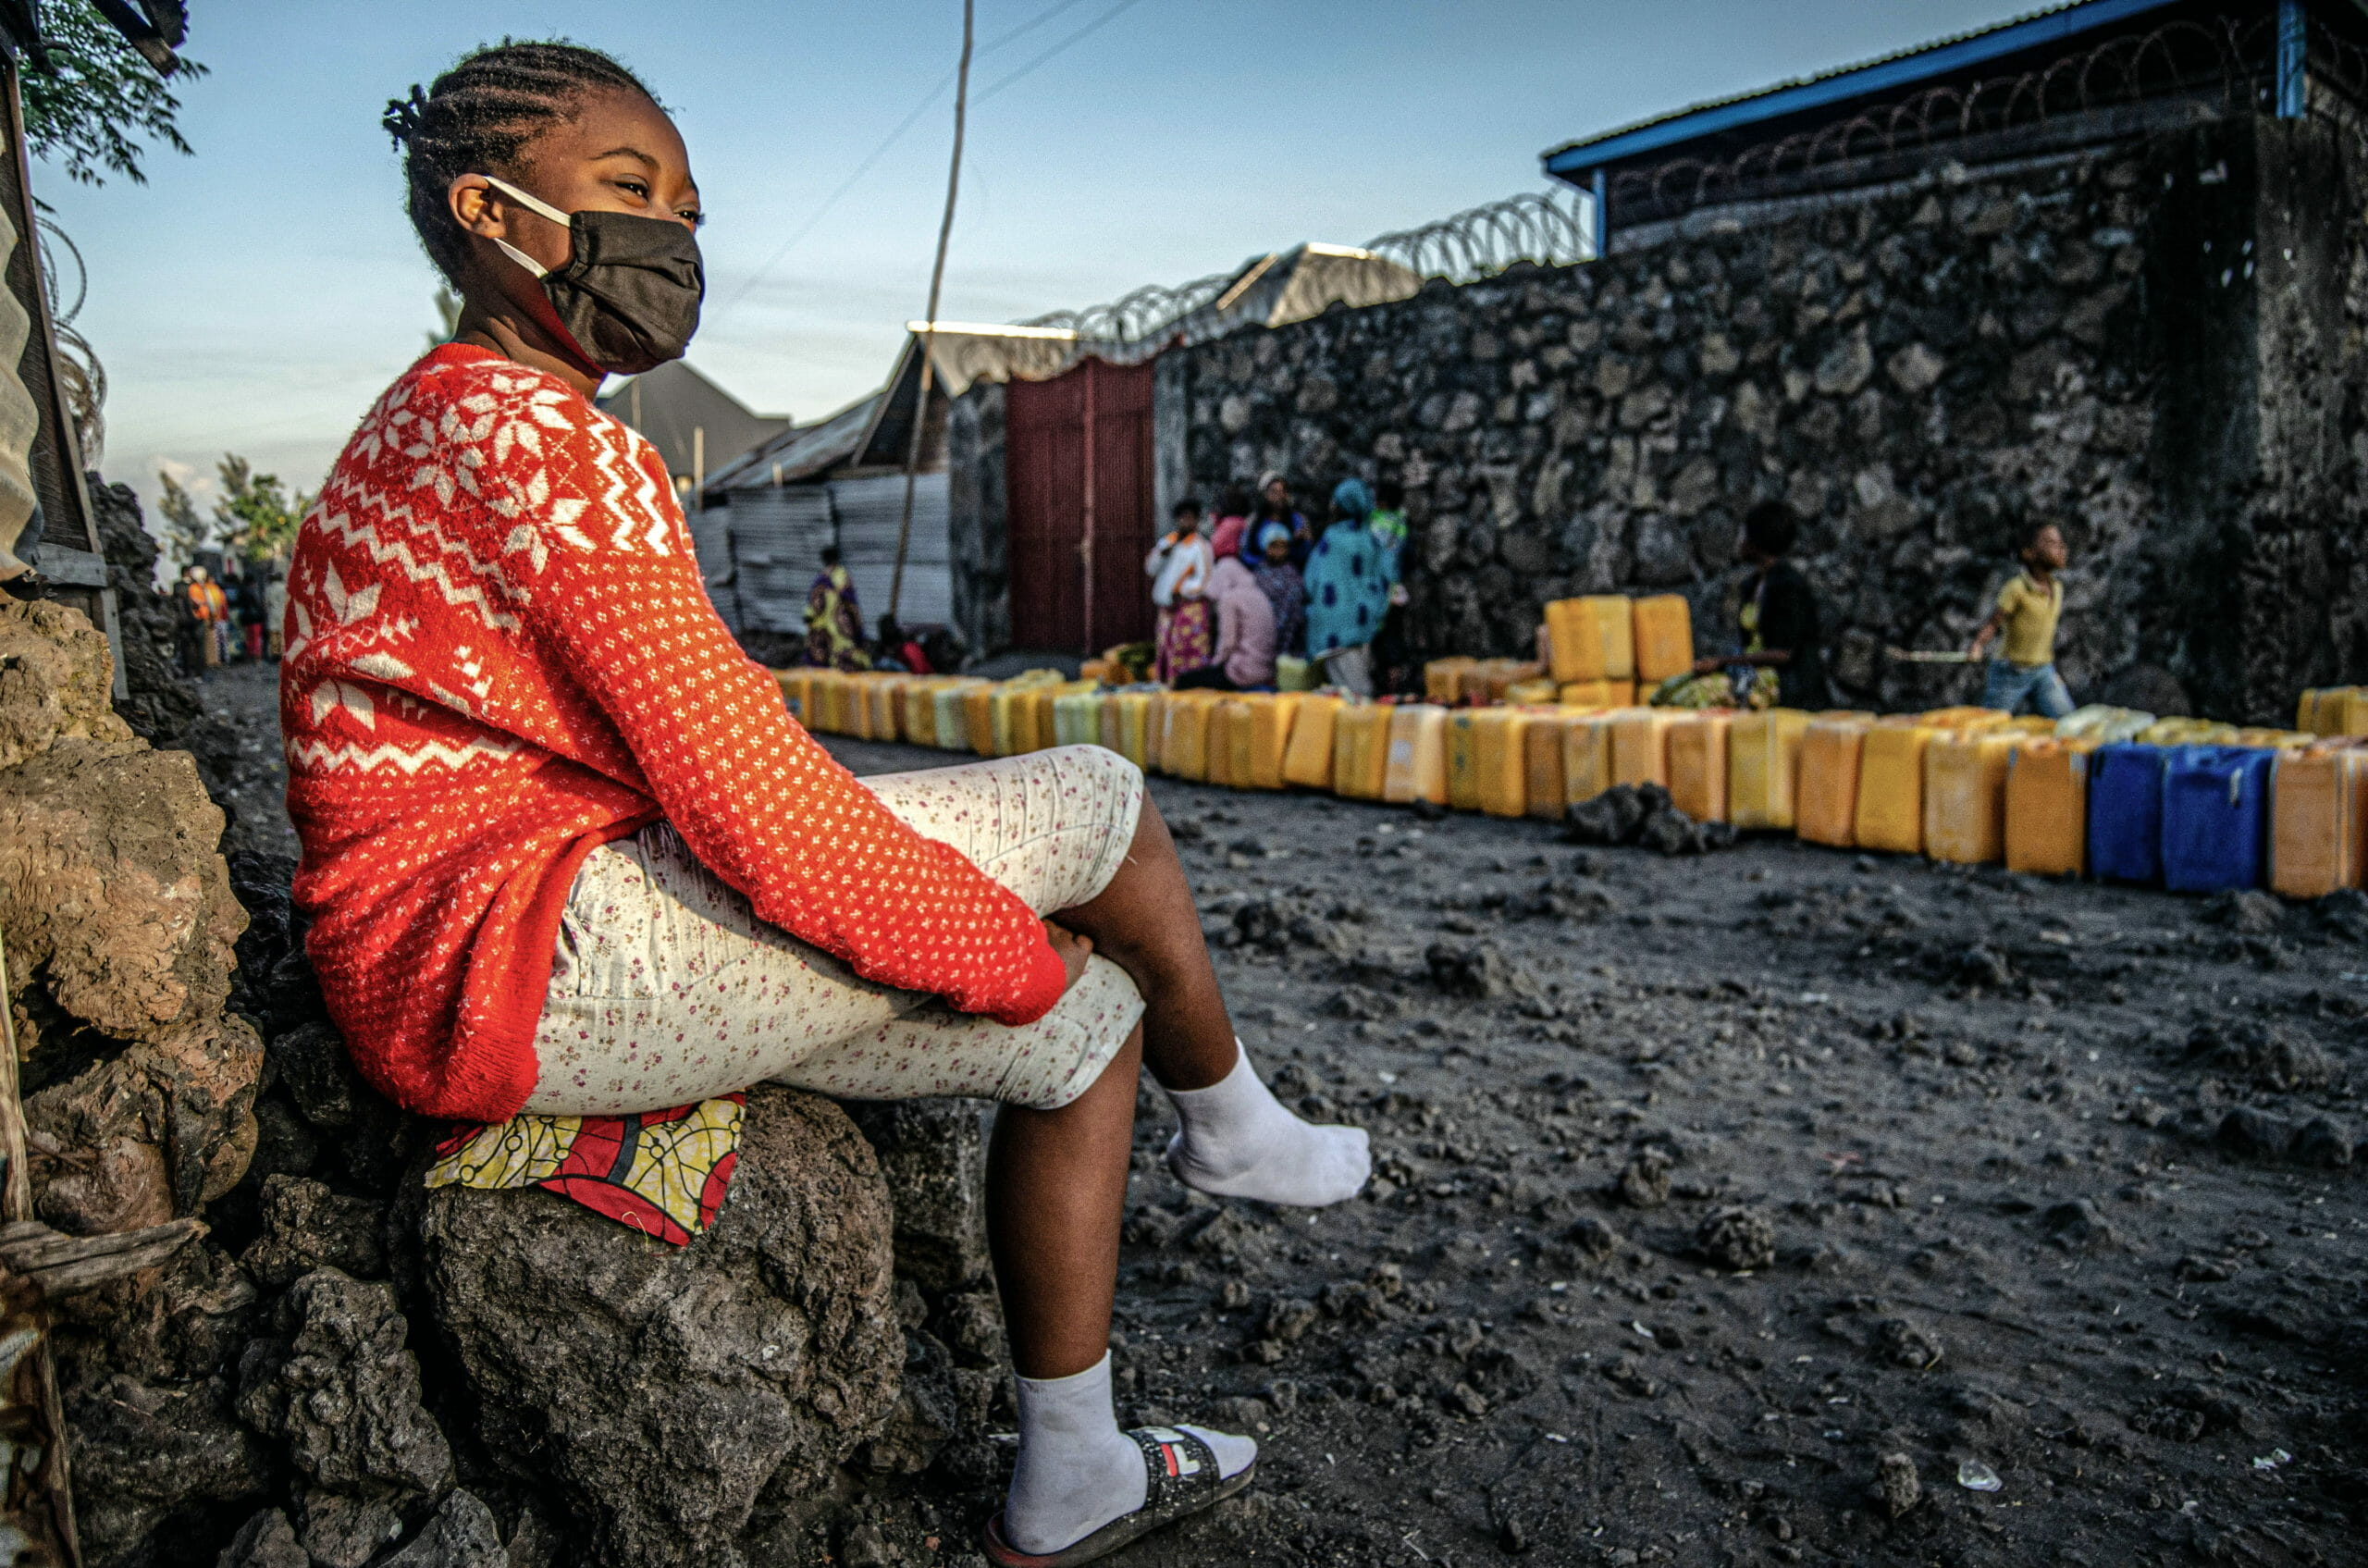 Goma, Democratic Republic of Congo, May 2020. A girl waits to fill water containers in Goma, the capital of eastern Congo's North Kivu Province last month. Water collection in Congo is usually done by women and girls who are put at risk of sexual violence in remote areas or during hours of darkness. Without private latrines, women and girls must also find isolated locations to go to the toilet, often at night, again putting them at risk of being raped. © Arlette Bashizi for Fondation Carmignac